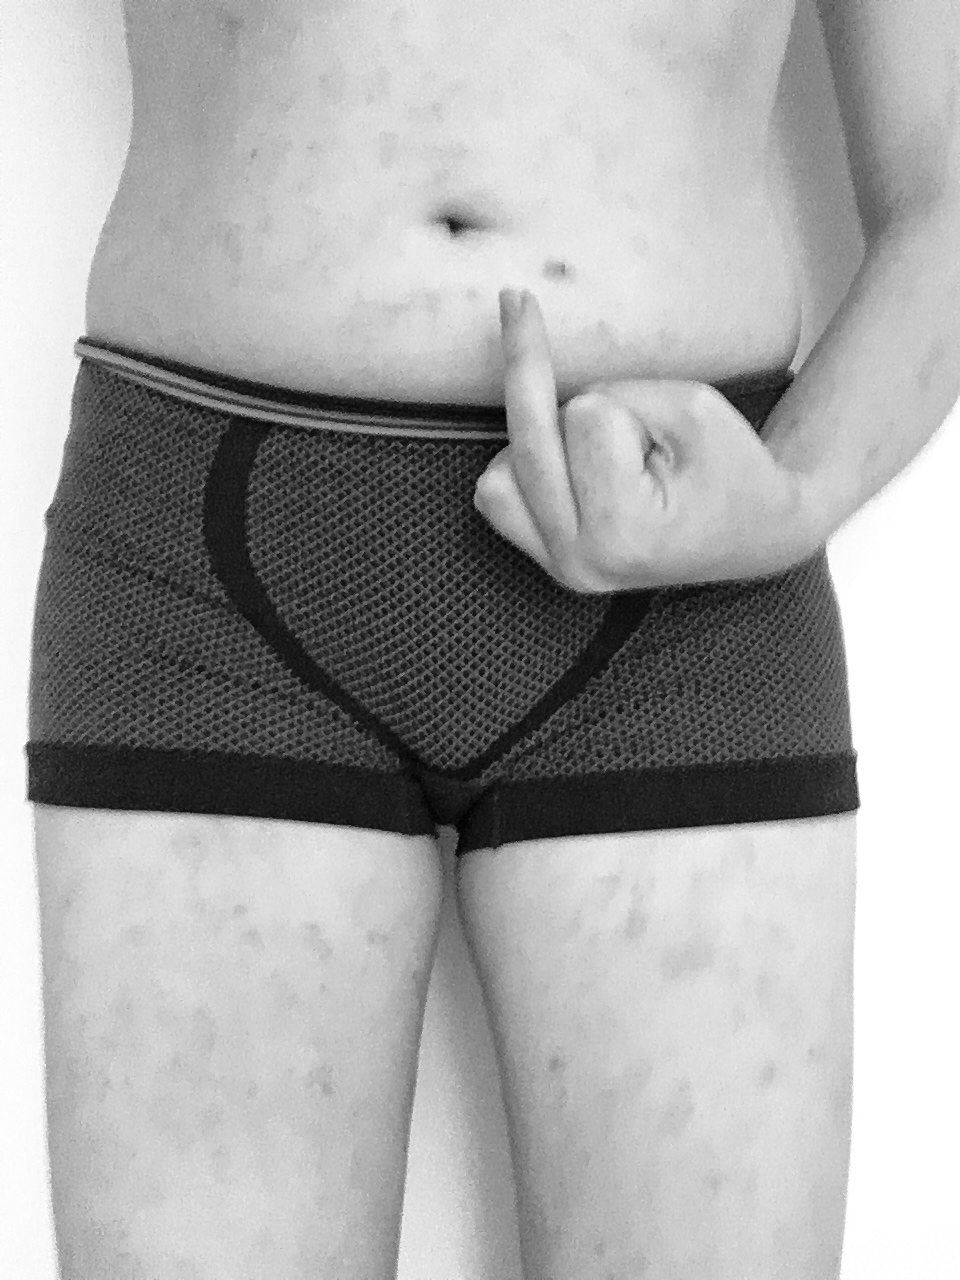 A black and white image of a girl in boxers sticking her middle finger up to the camera. Photo.